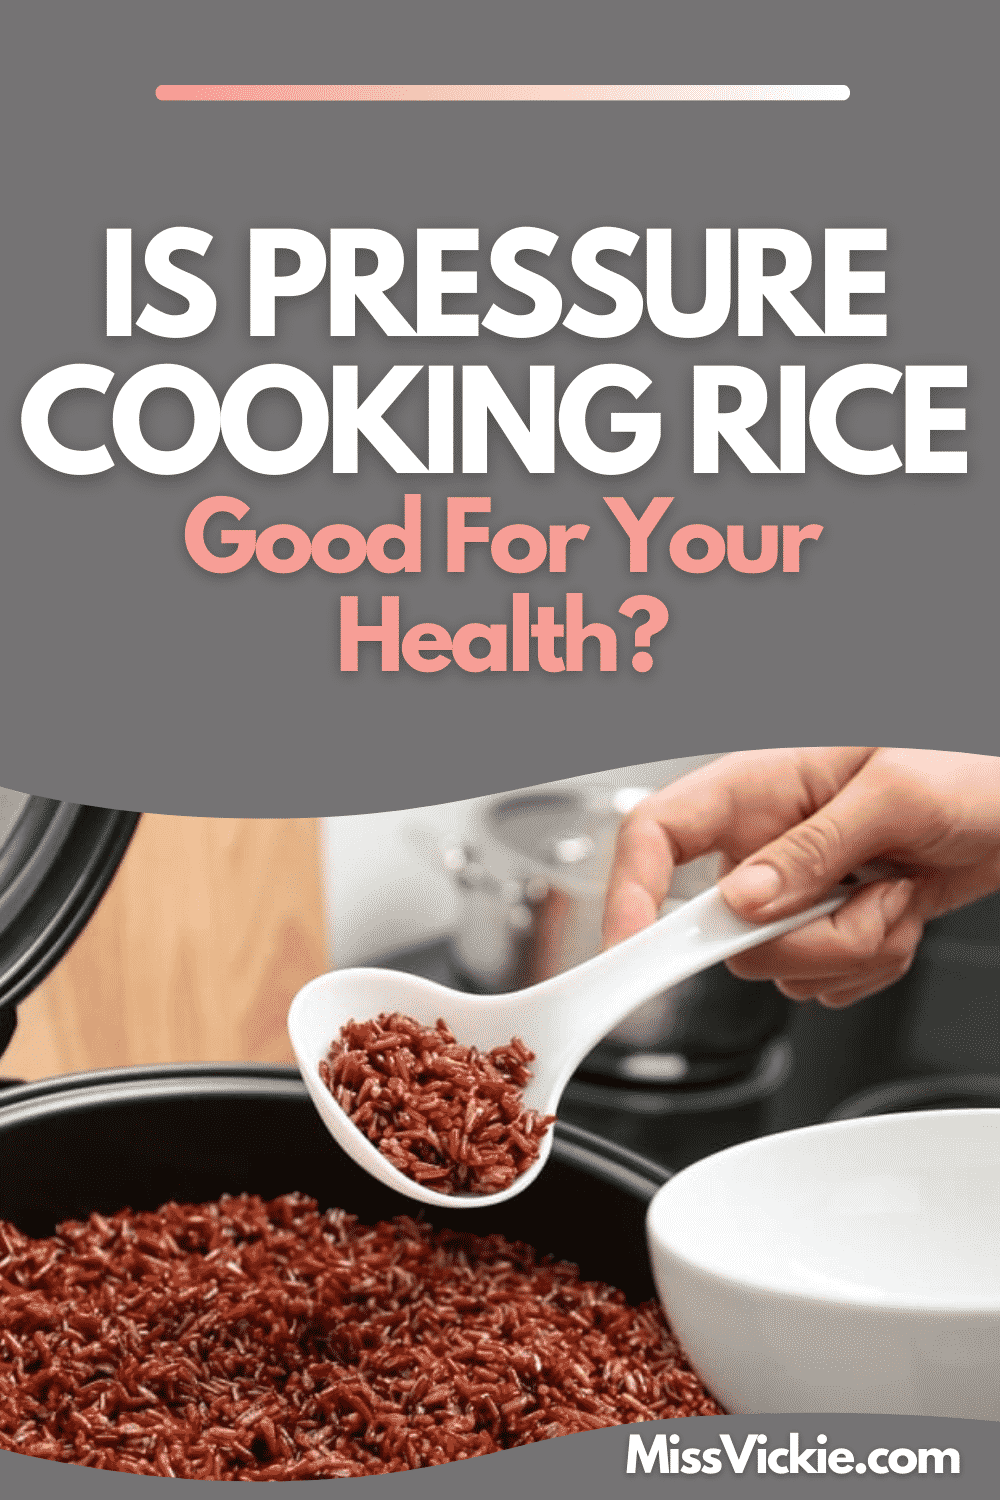 Is Pressure Cooking Rice Good For Your Health